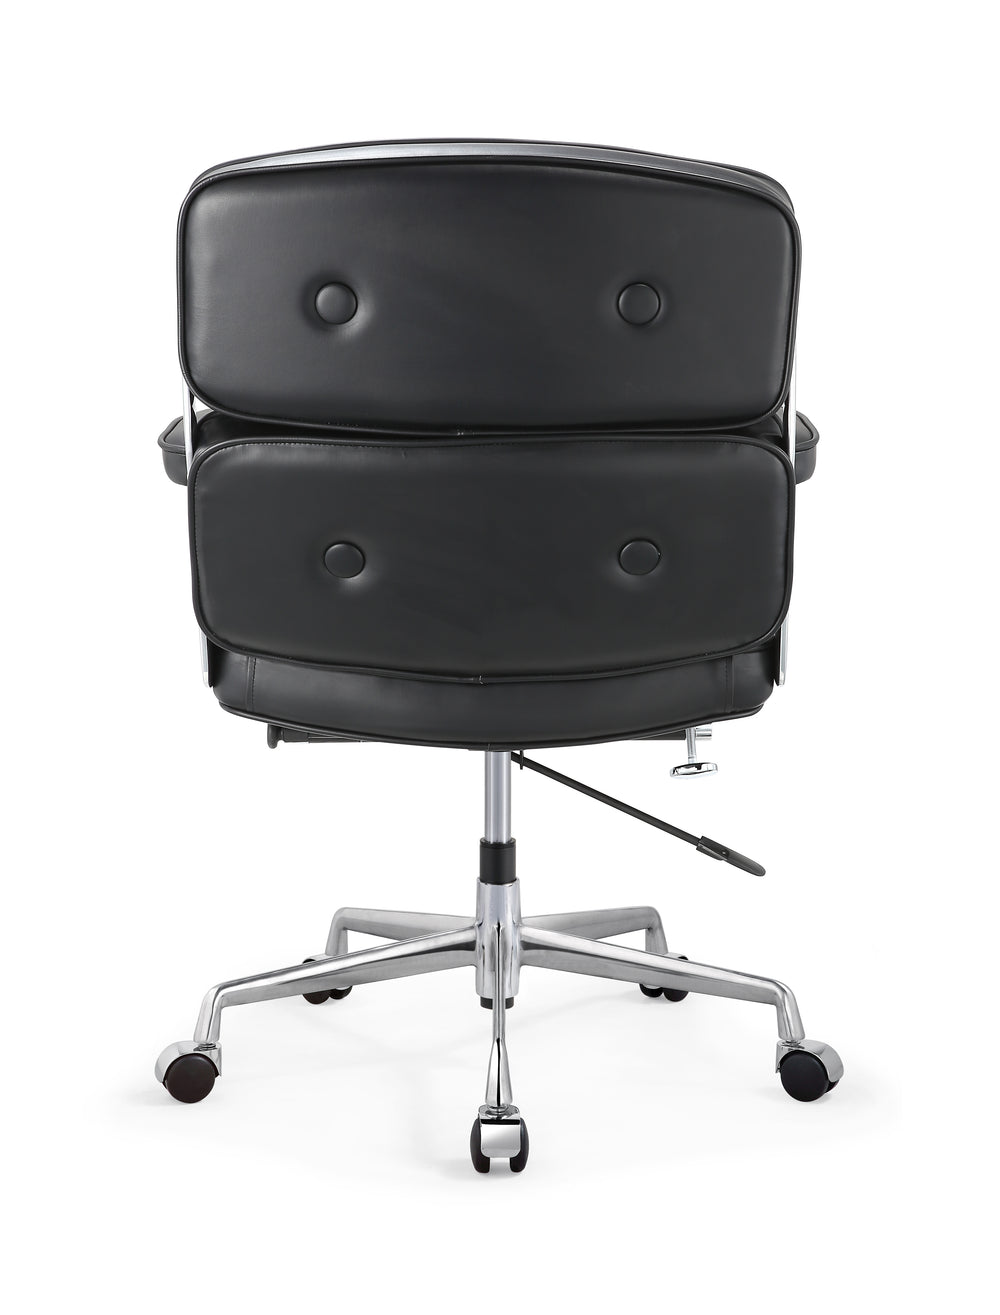 M310 Office Chair In Aniline Leather